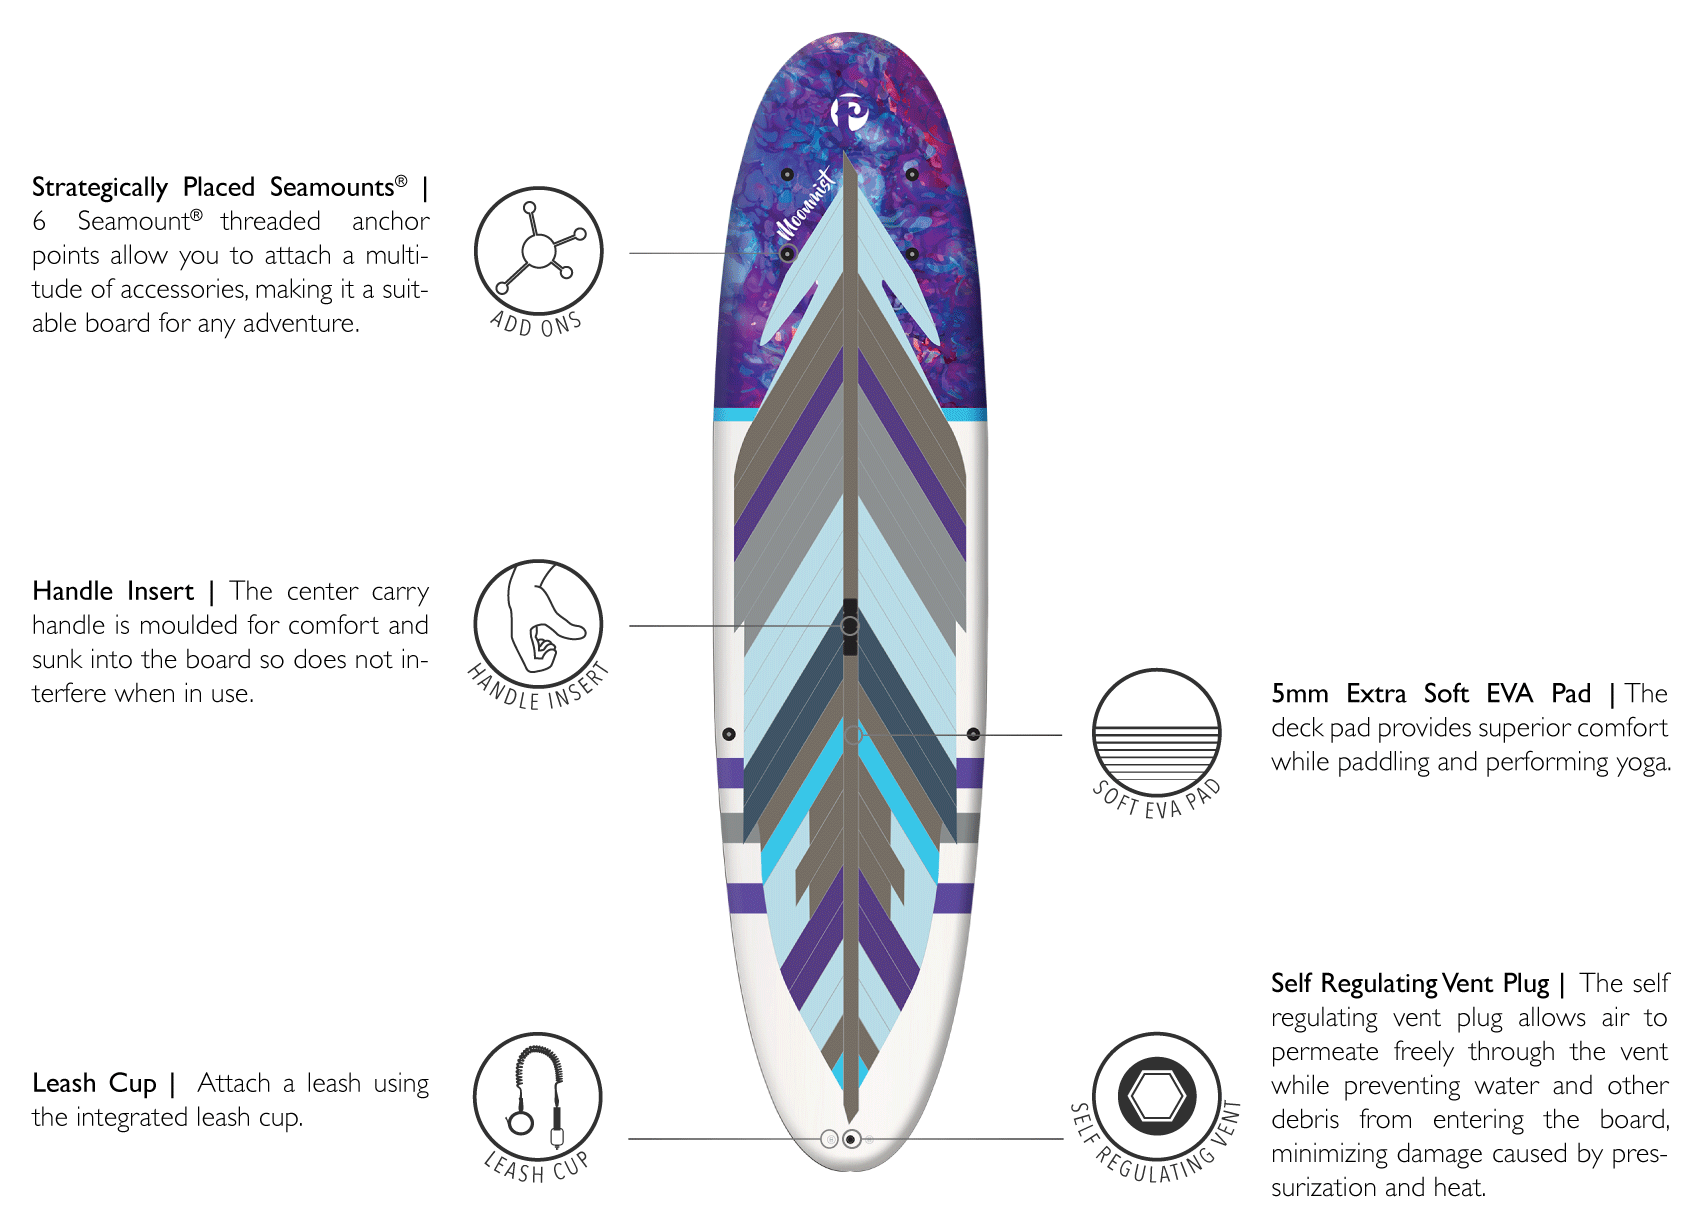 This is the very best yoga stand up paddle board.Moon mist yoga board including stragetgcally placed seamounts center grab handle for comfort and maneuvering leash up for leash 5mm extra soft Eva deck pad, self regulating vent plug